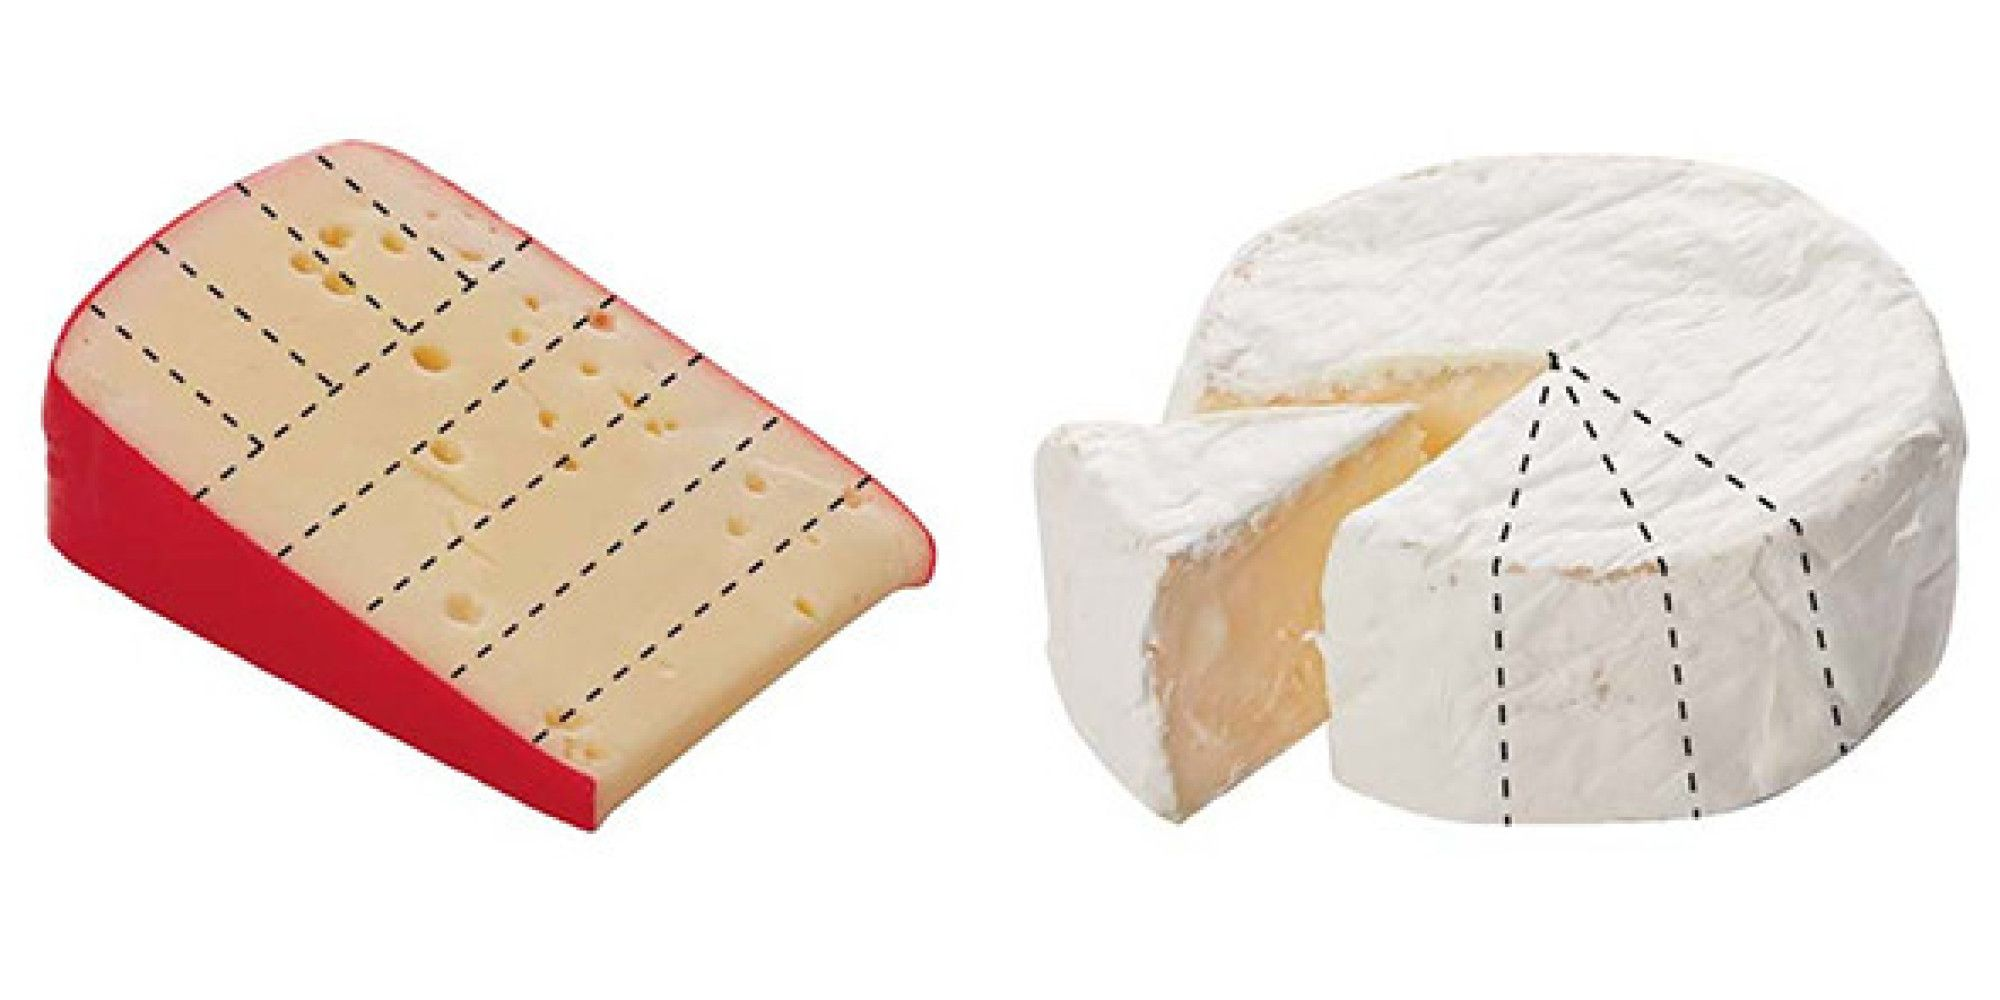 How to cut every shape of cheese